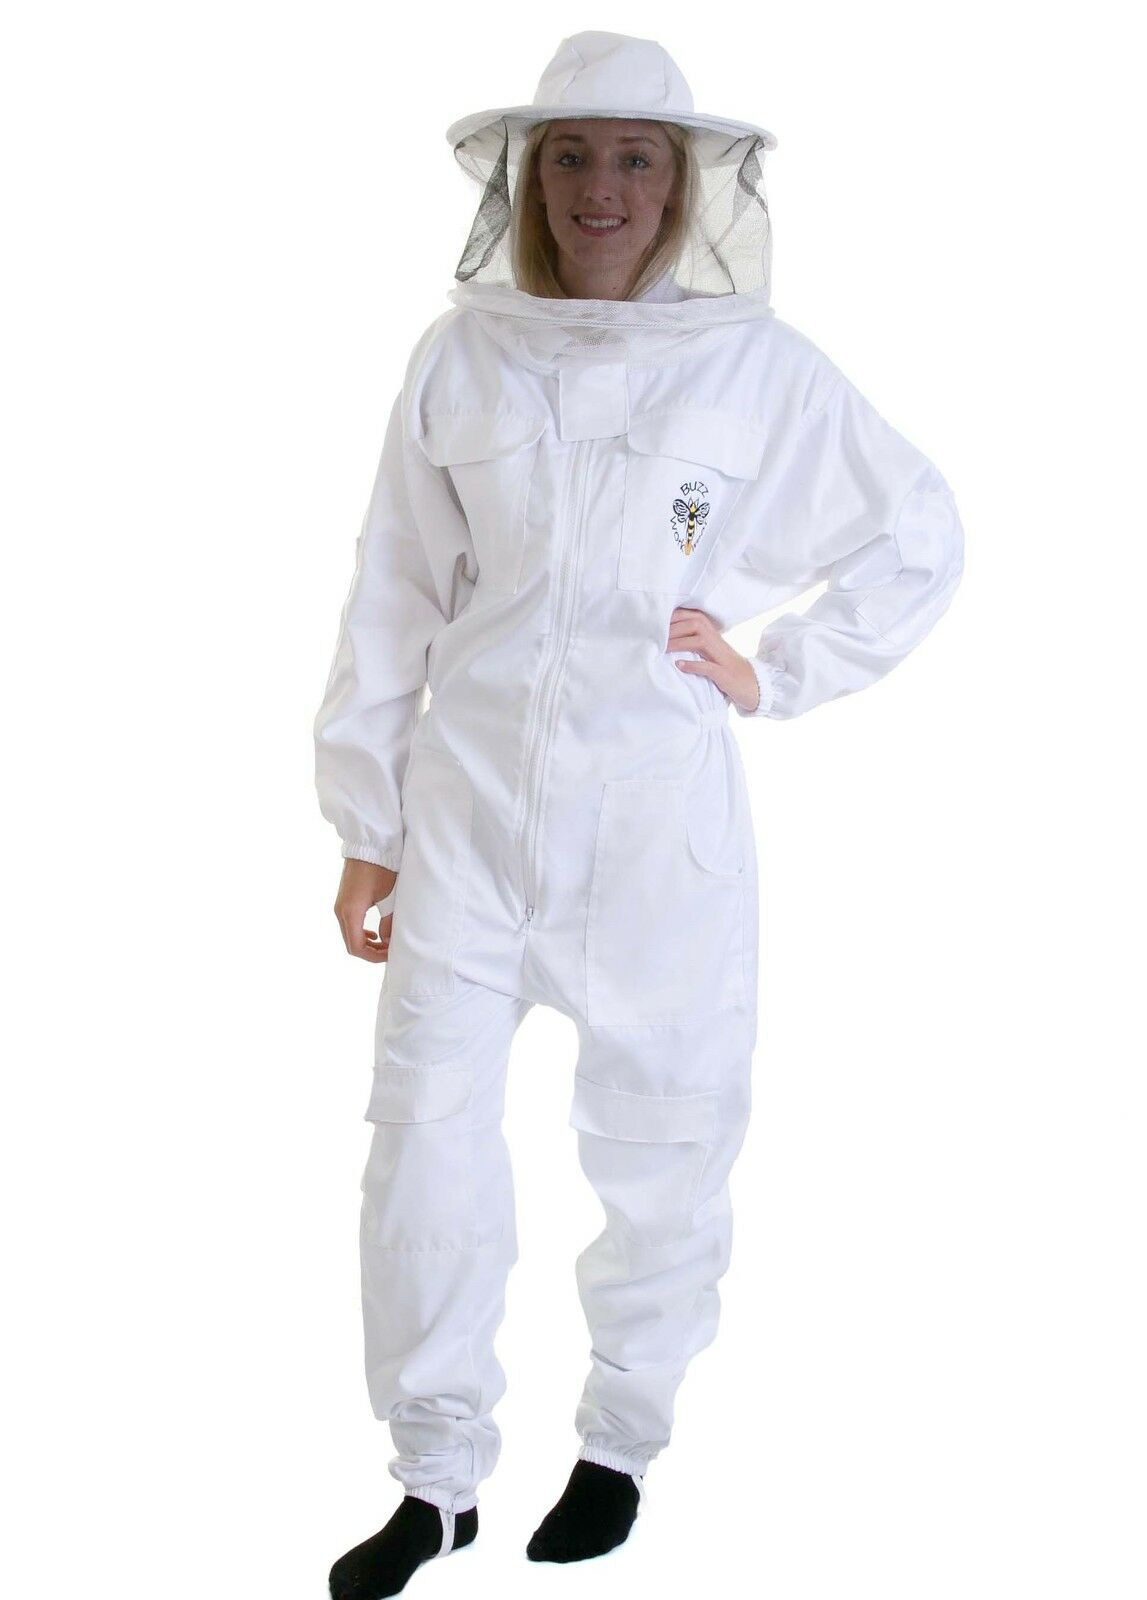 BUZZ Beekeepers White Bee Suit with Round Veil - All sizes